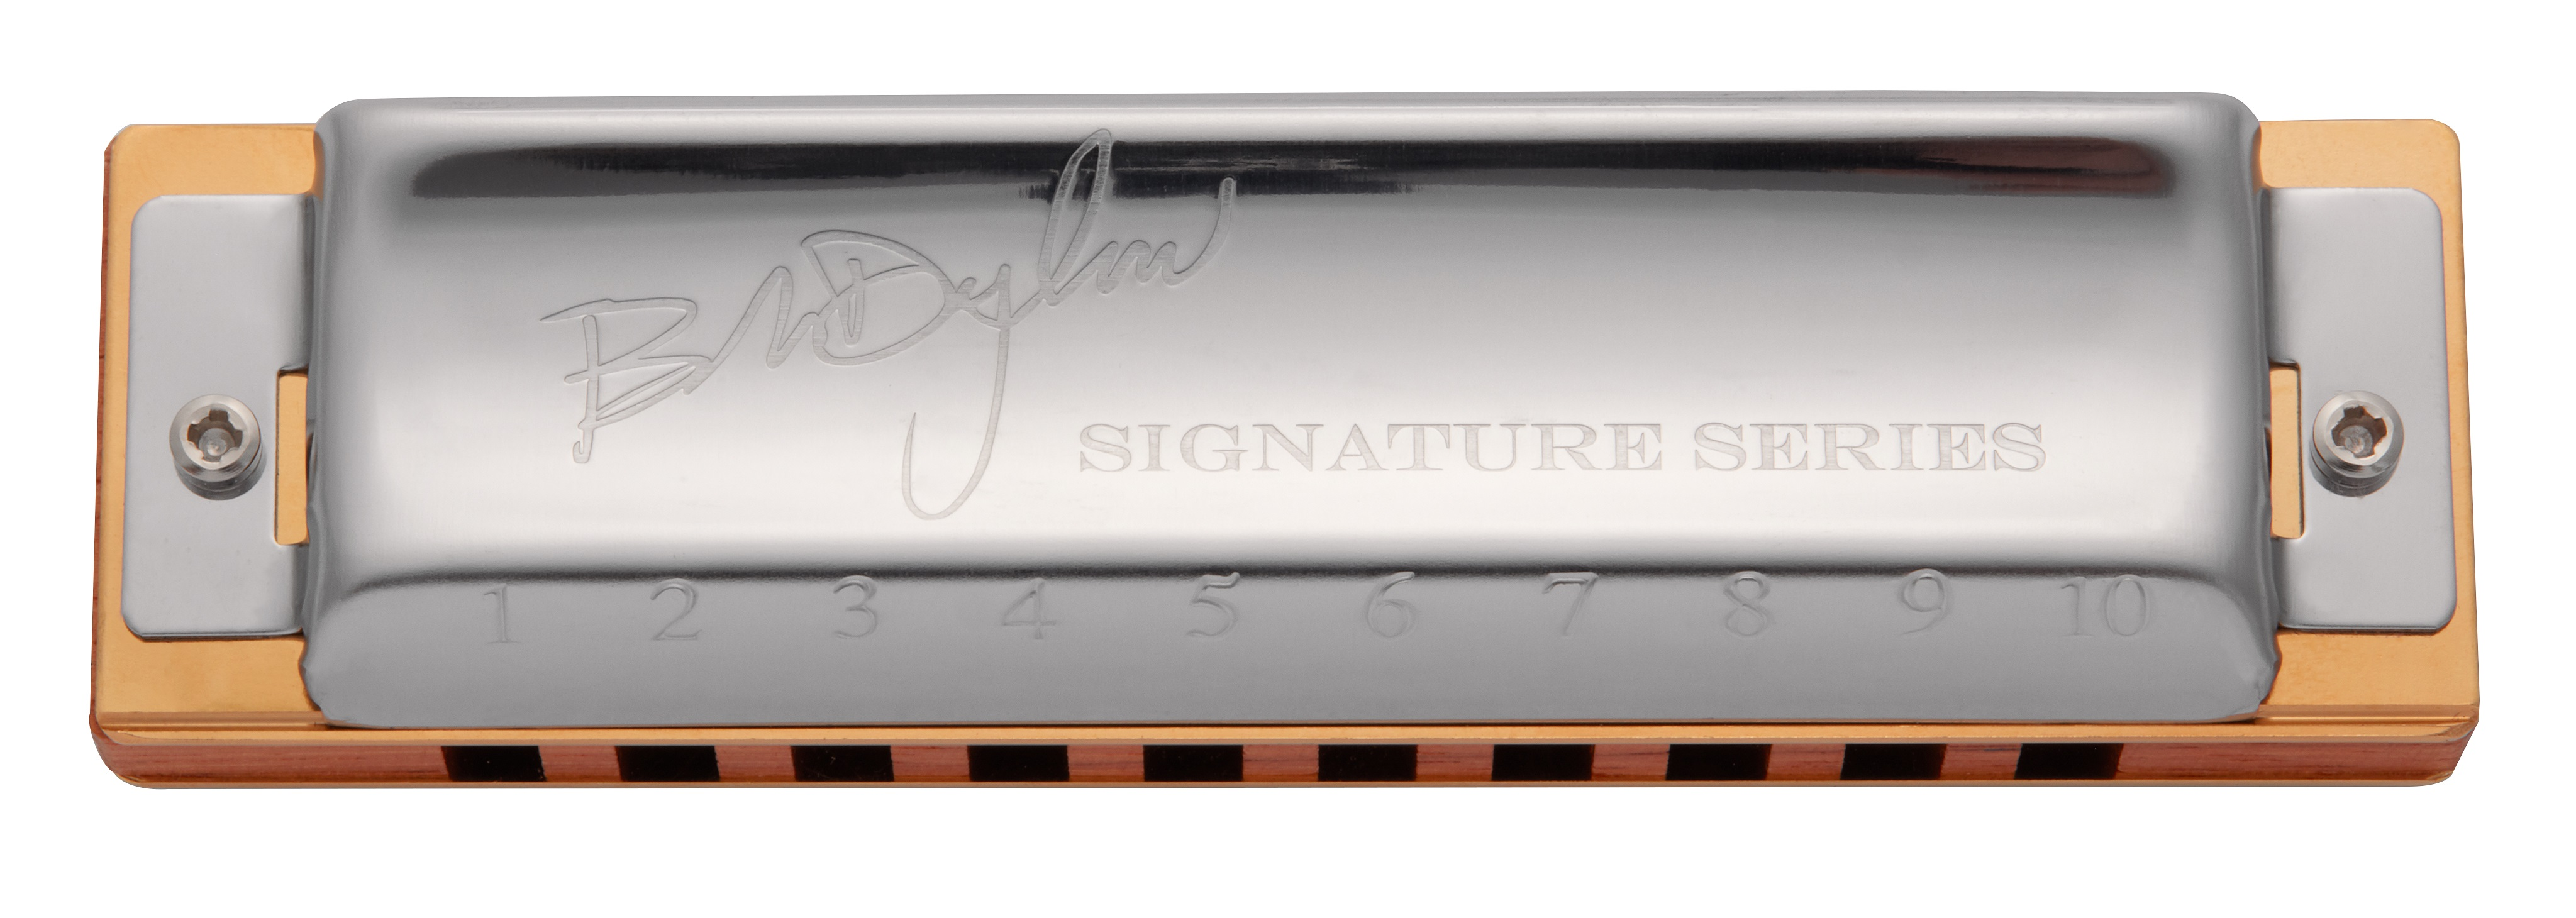 Hohner Bob Dylan Signature Series C / in magnetic cardboard box